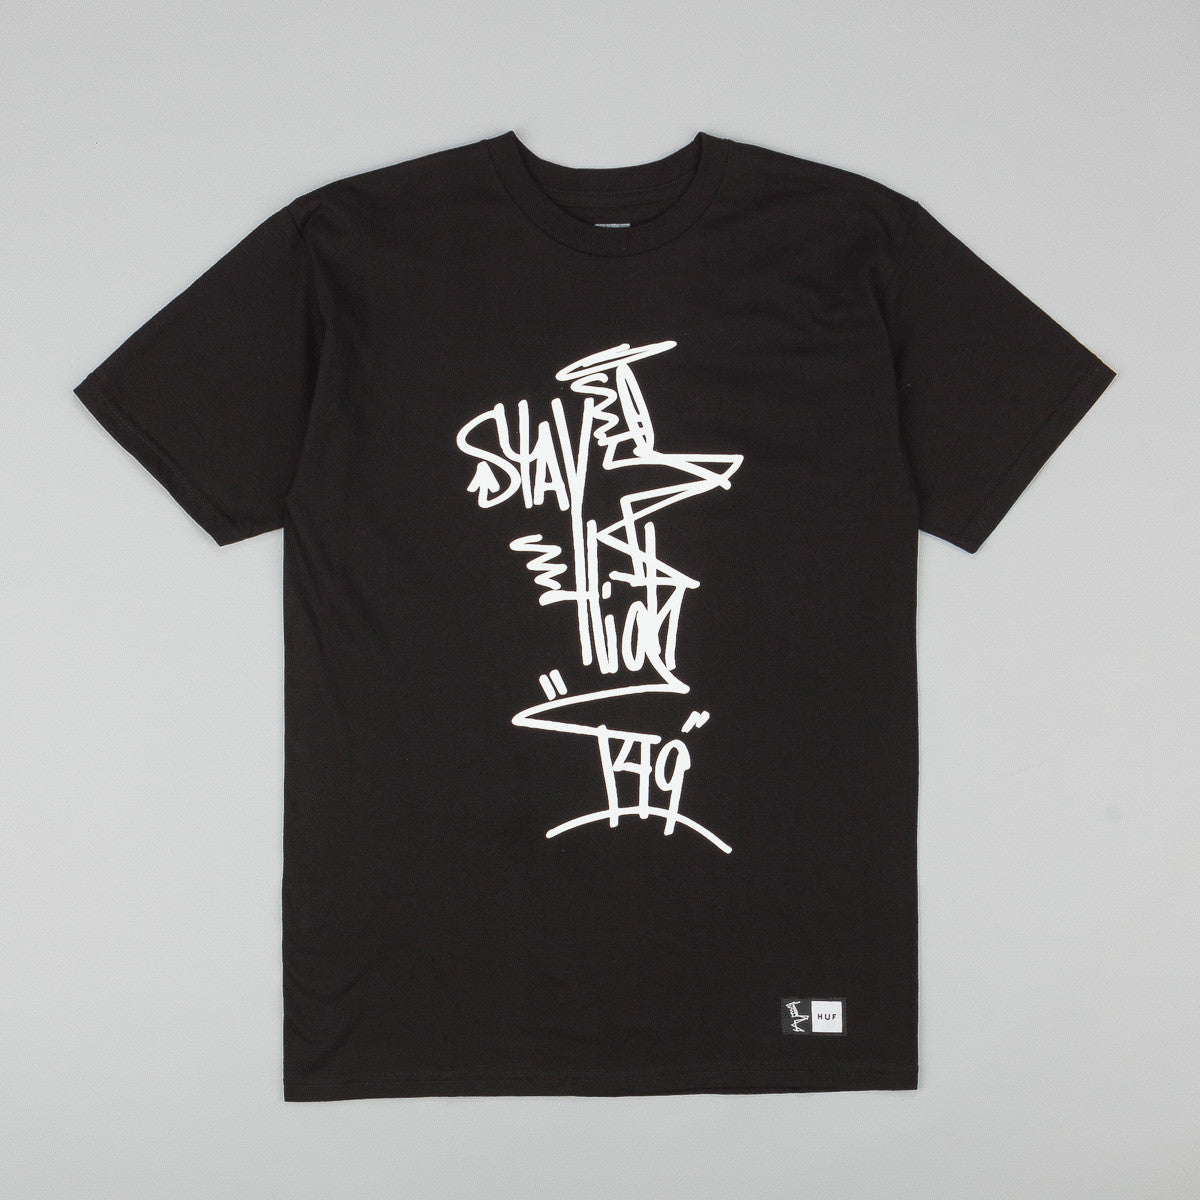 HUF X Stay High 149 Full Tag T-Shirt